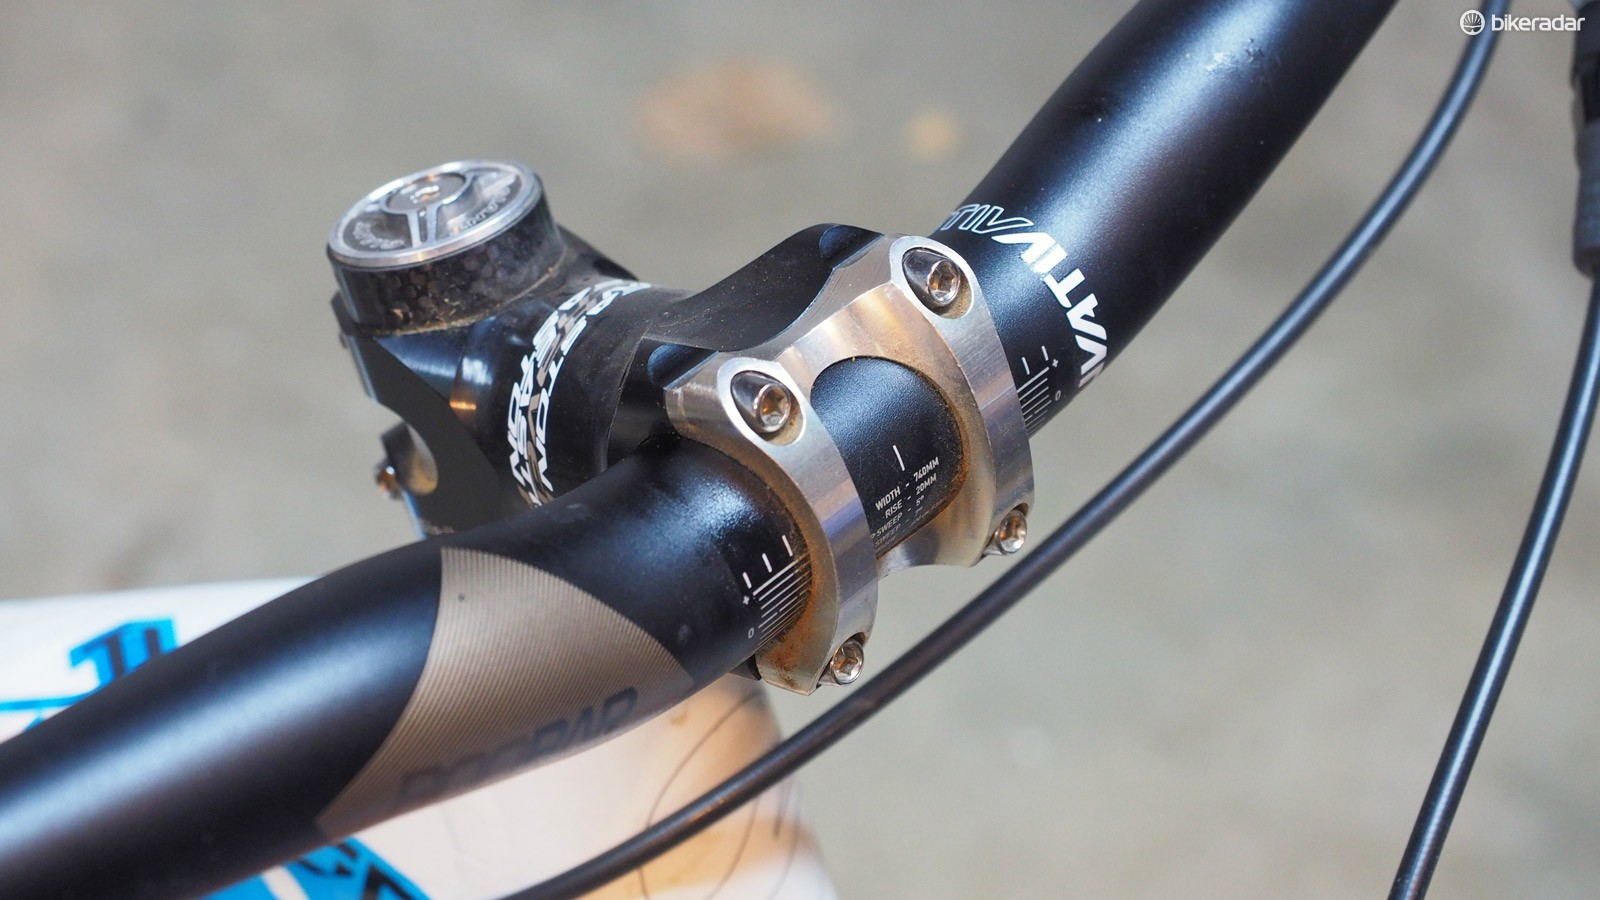 Handlebar clamps are prone to creaking, especially with metal-on-metal interfaces. Mark the handlebar position with a permanent marker and remove the faceplate clamp. Clean everything off, apply friction paste to all of the mating surfaces, grease the bolt threads, and then reinstall, being sure to tighten to proper torque